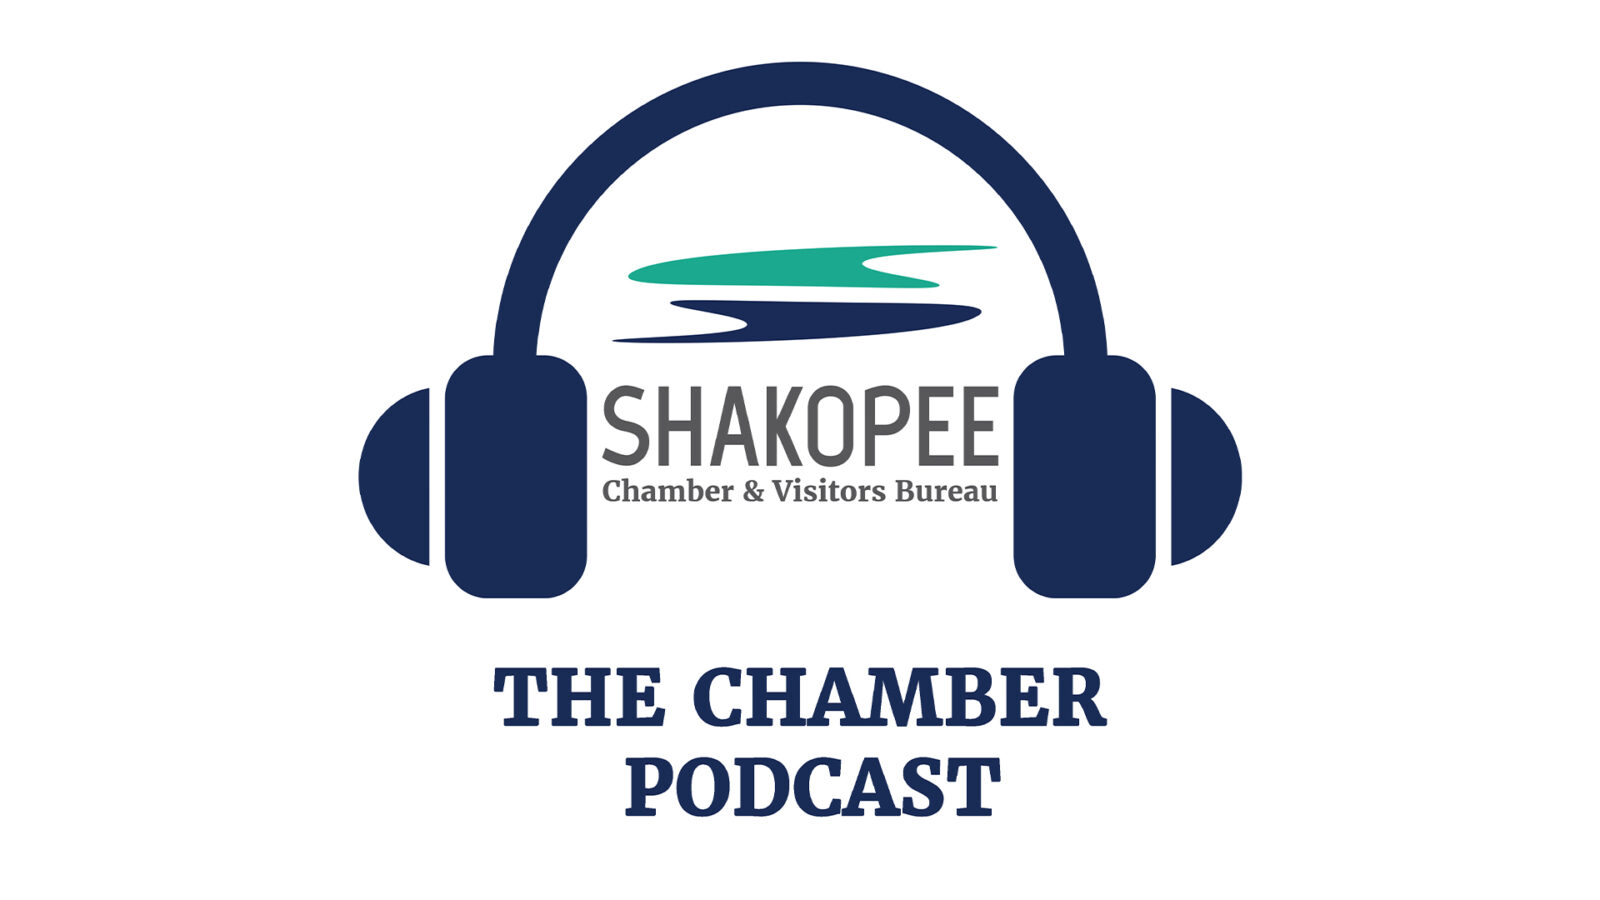 The Shakopee Chamber Podcast Episode #22 Featuring Congresswoman Angie Craig